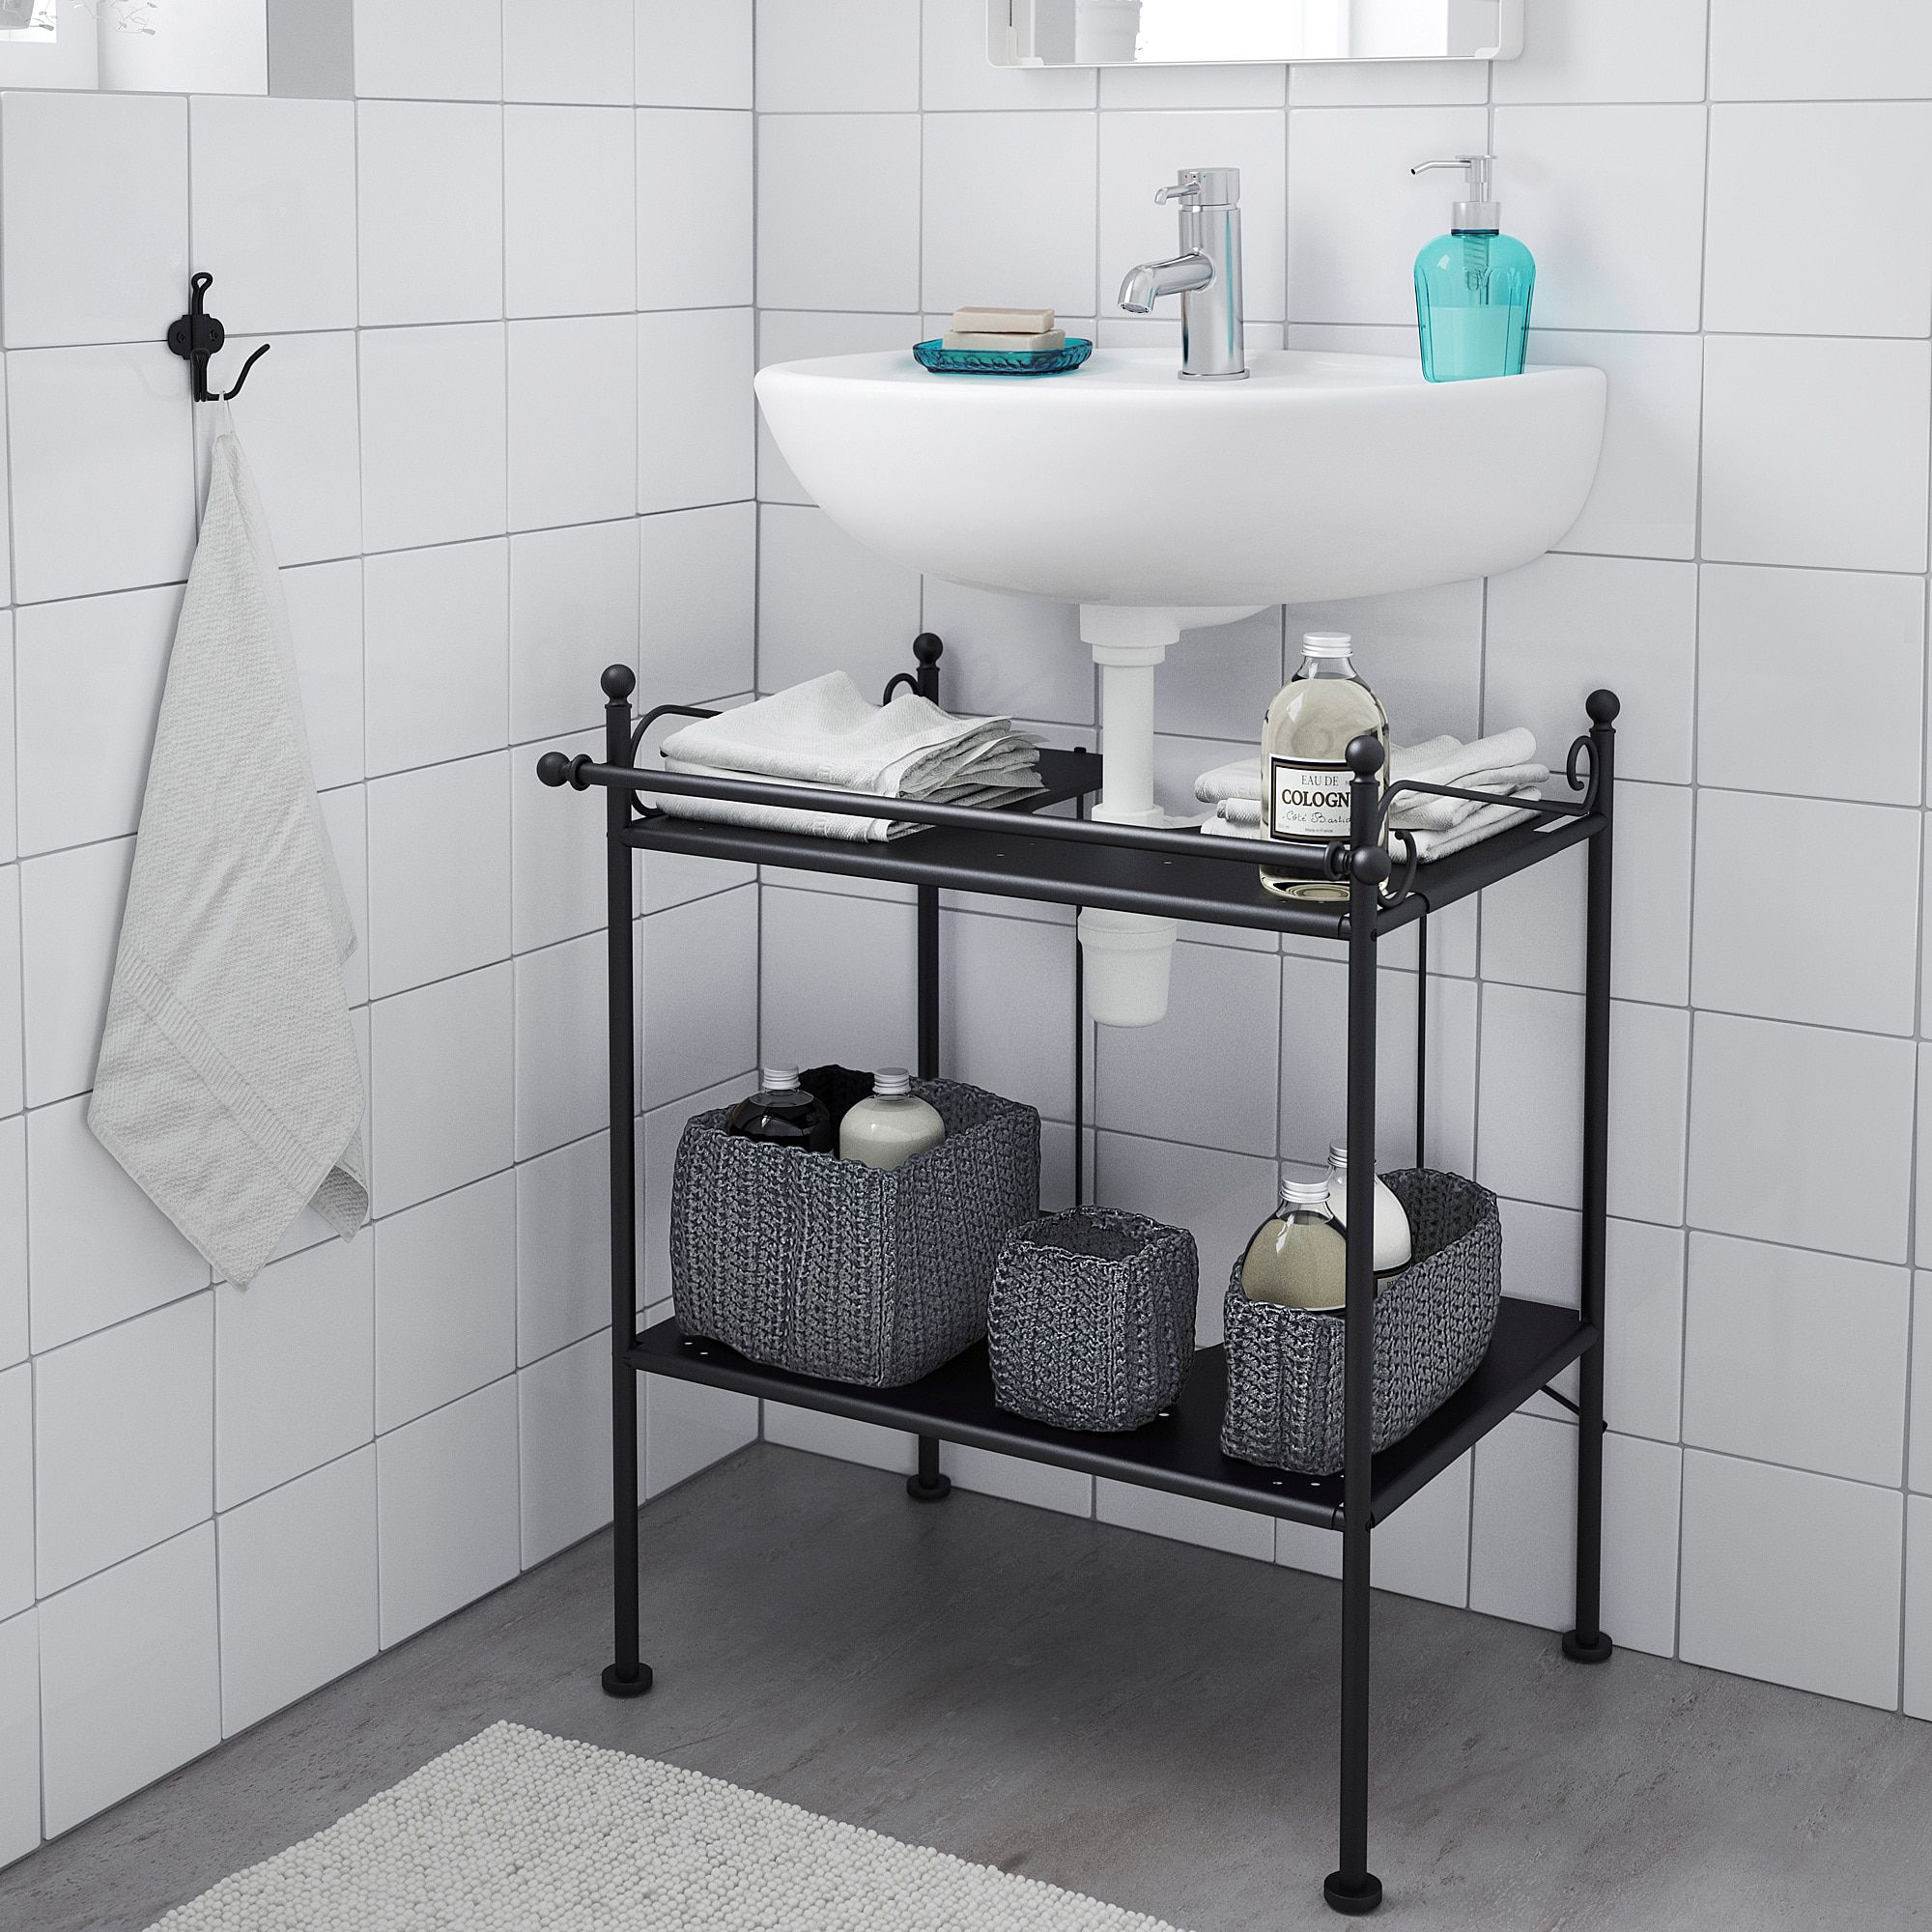 Ikea hack. Rönnskär, Bathroom shelves